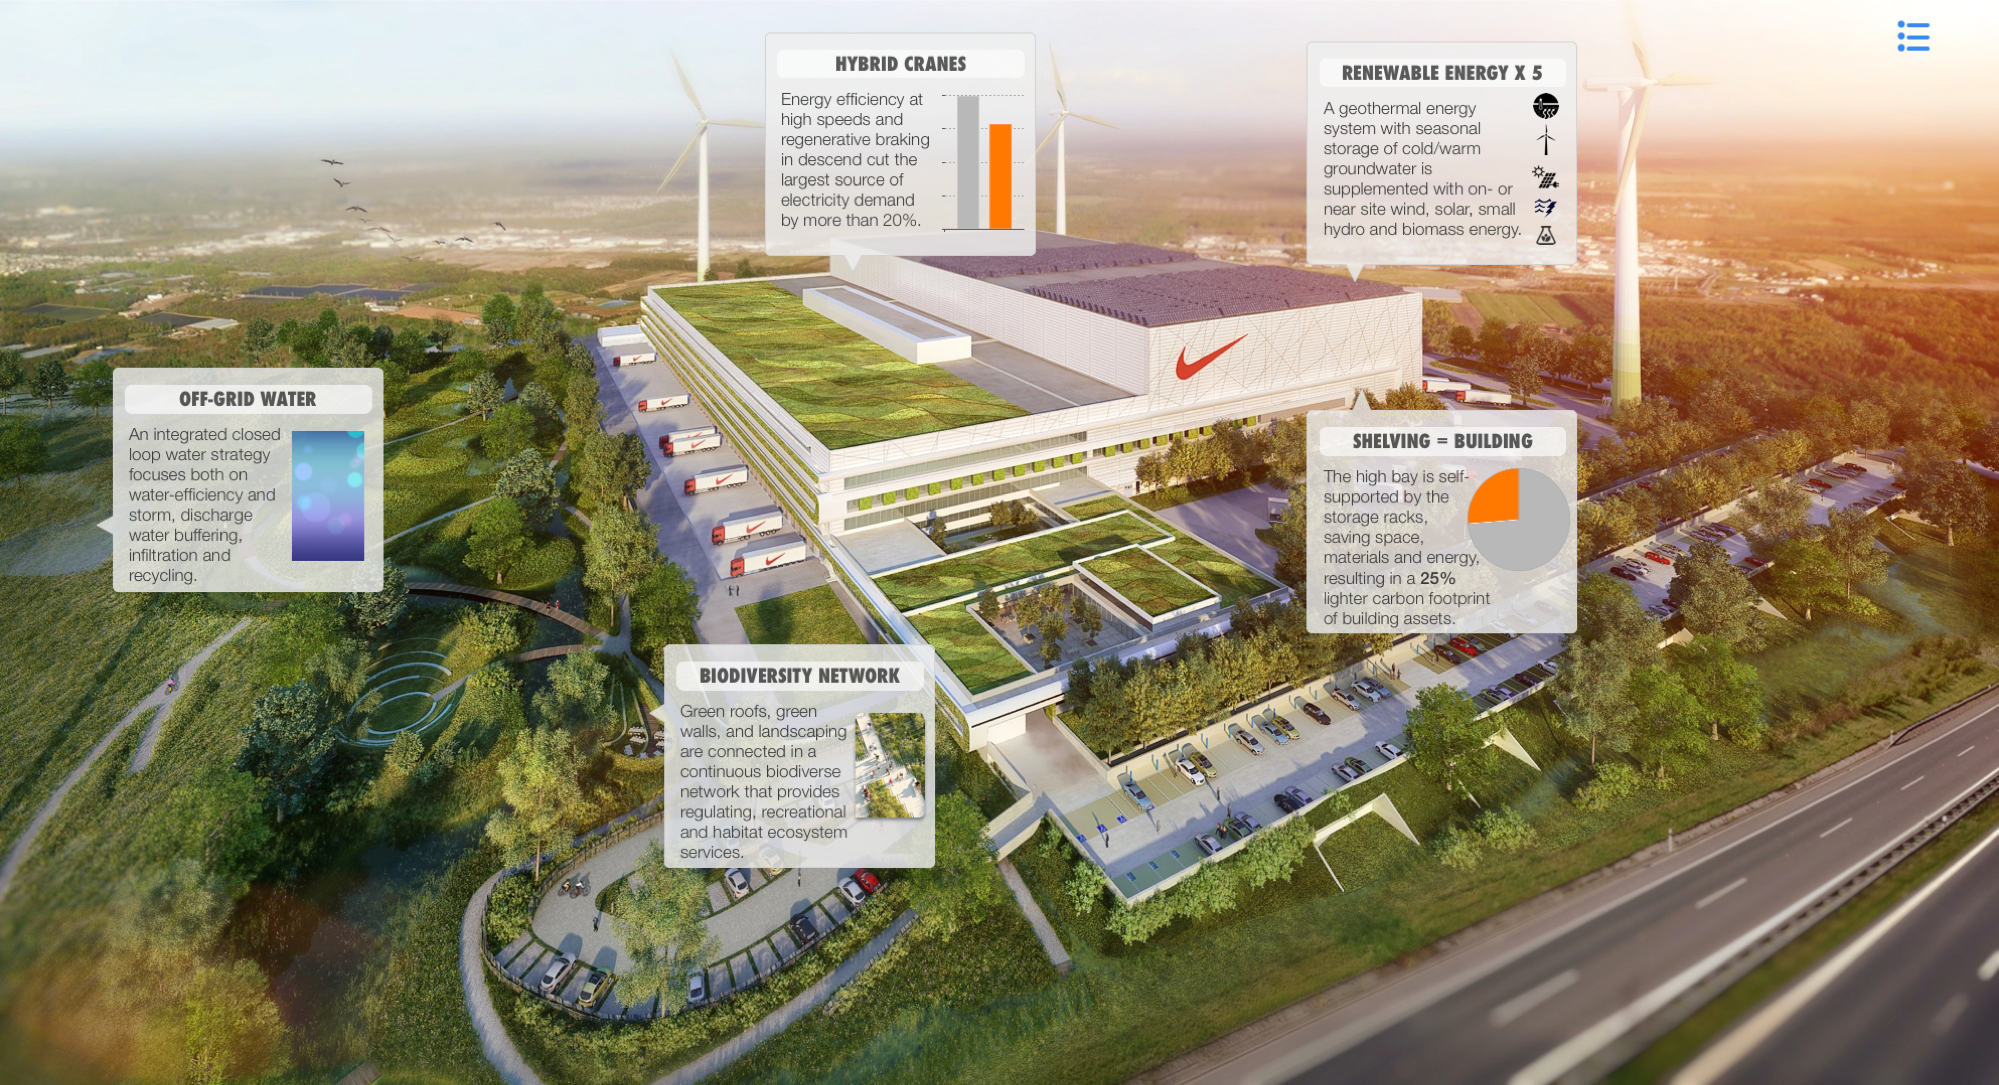 The new distribution centre and all its sustainable implementations